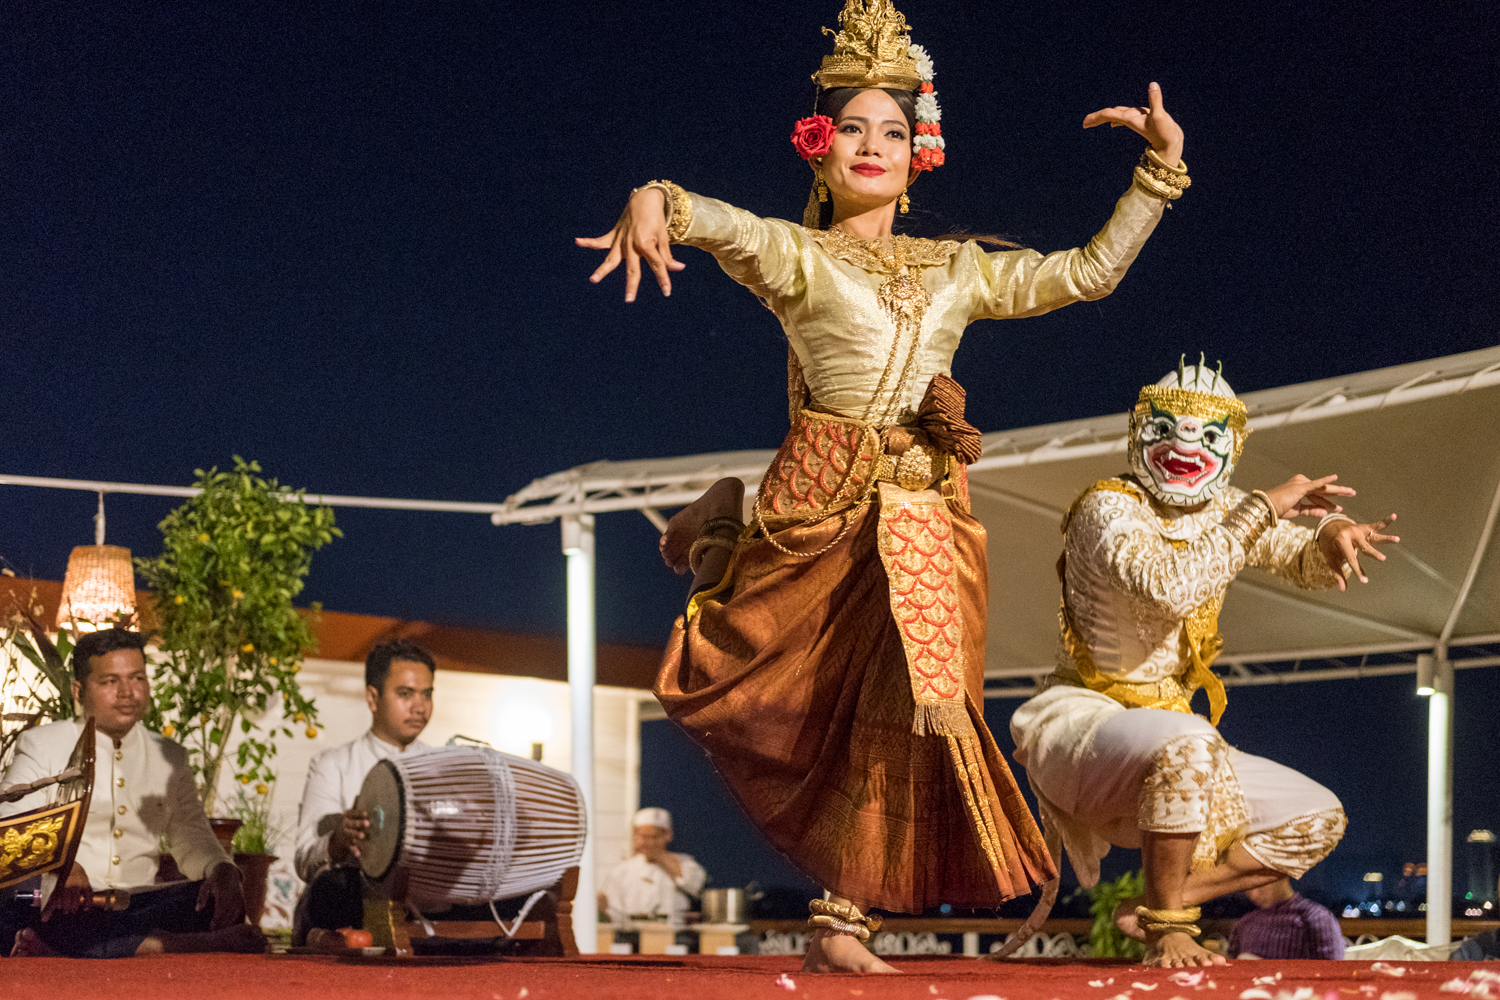 Apsara dancers perform the mermaid dance in Phnom Penh aboard The Jahan.